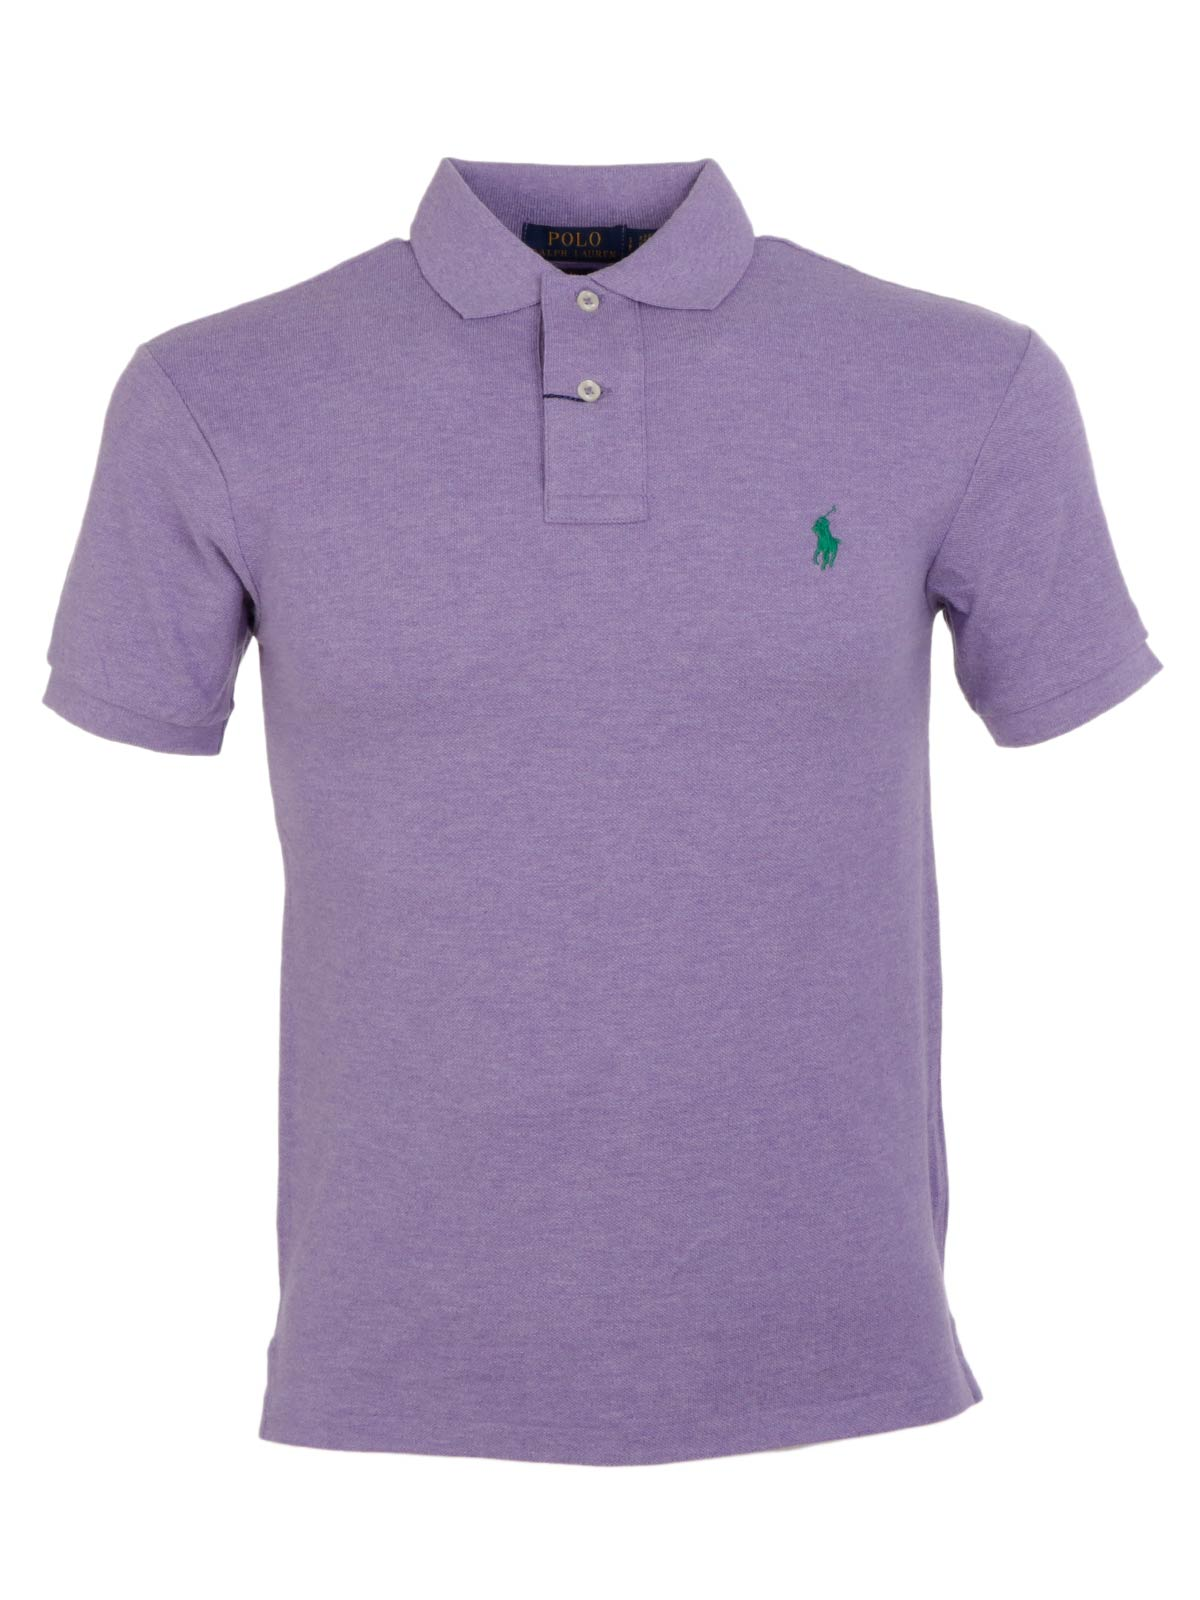 Lauren Slim Shirt Men's Polo Ralph Fit iPOXZuk